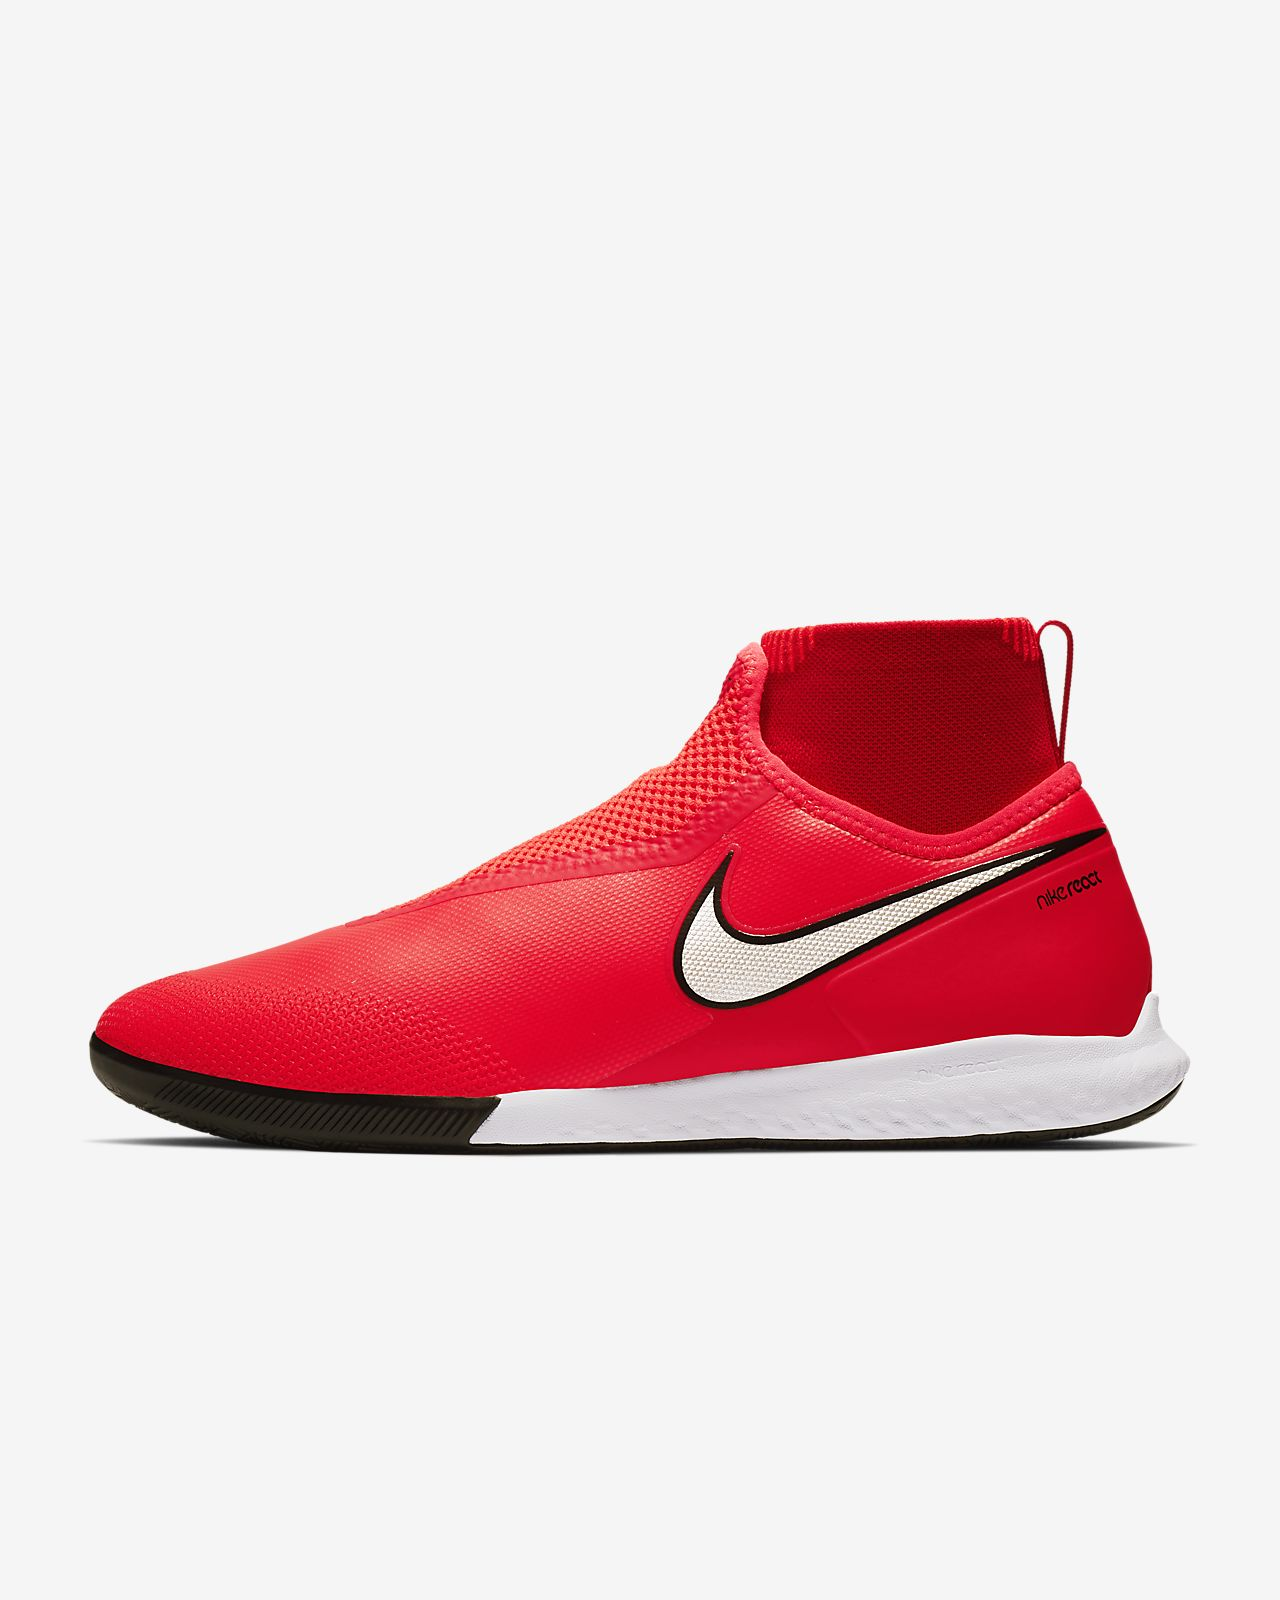 Nike React PhantomVSN Pro Dynamic Fit Game Over IC Indoor/Court Soccer Cleat